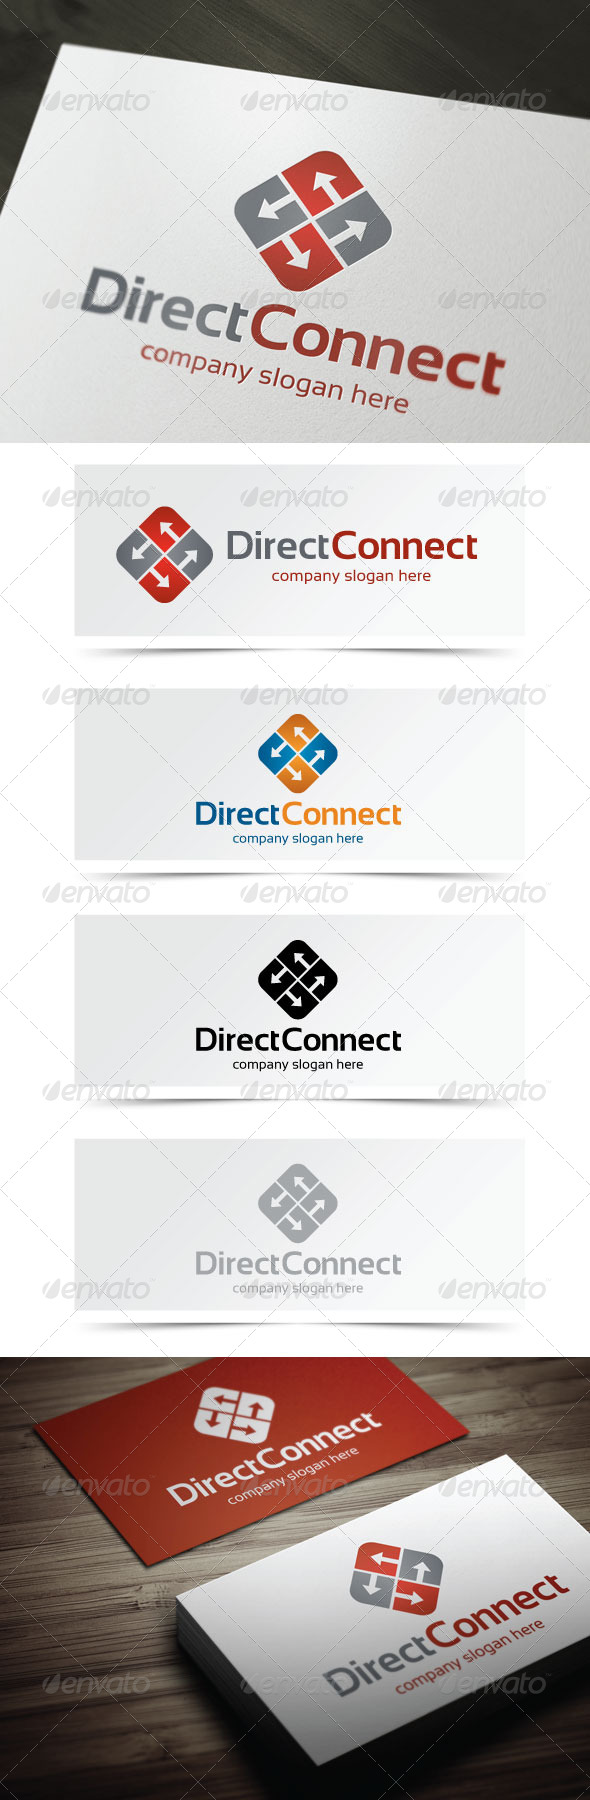 GraphicRiver Direct Connect 5302960